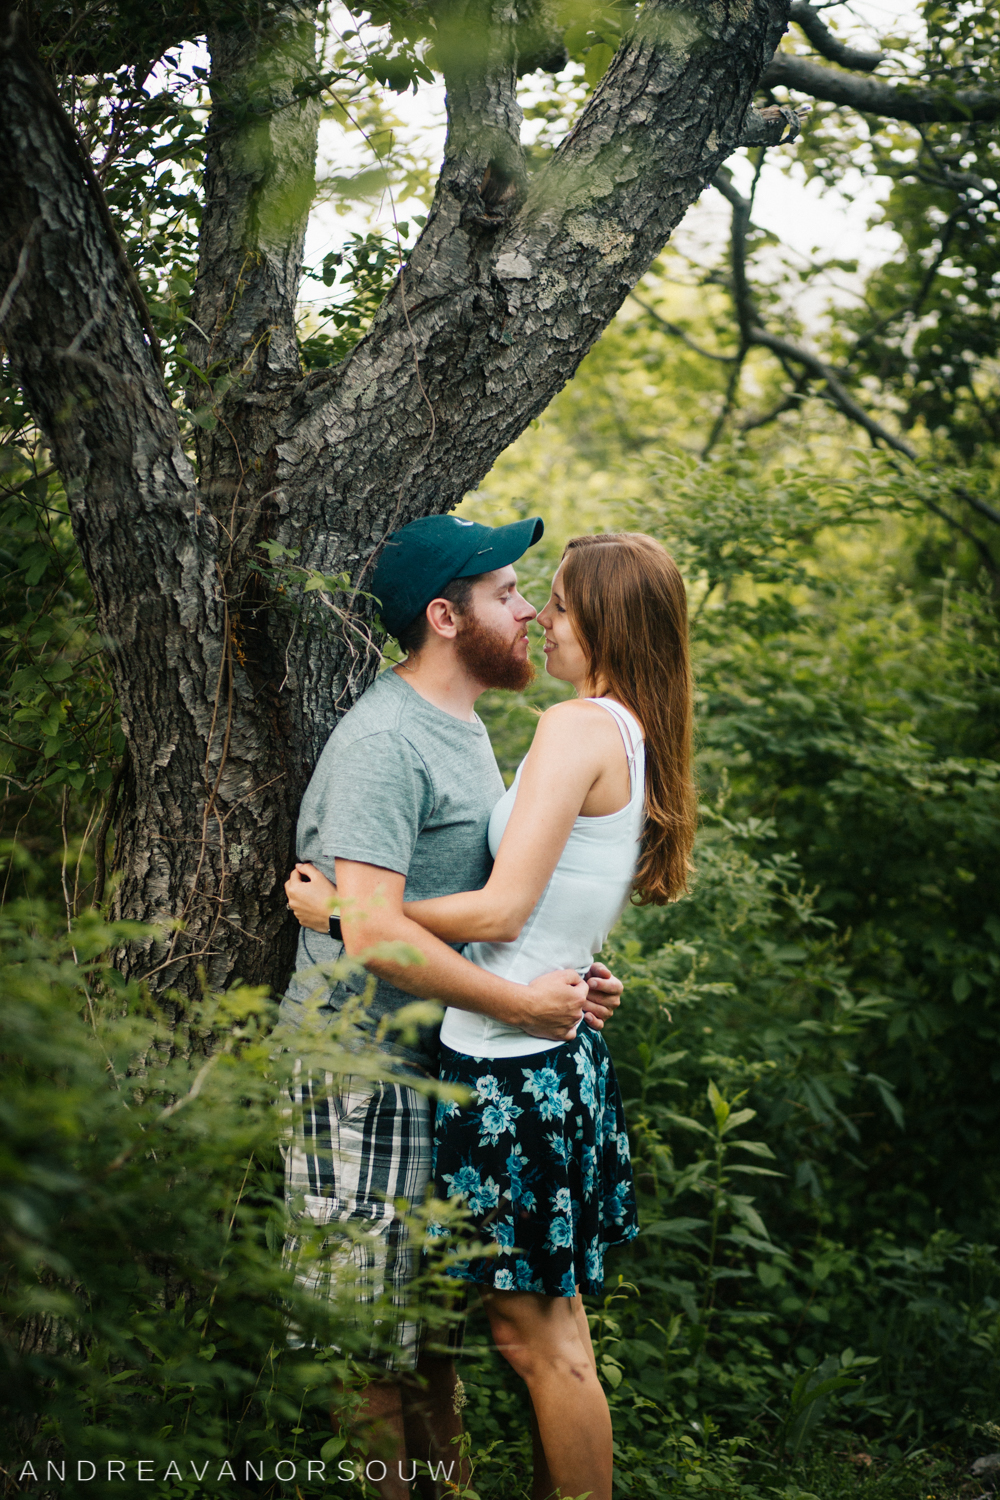 jamestown_rhode_island_Ri_engagement_session_photoshoot_wedding_outdoors_connecticut_wedding_new_england_photographer.jpg